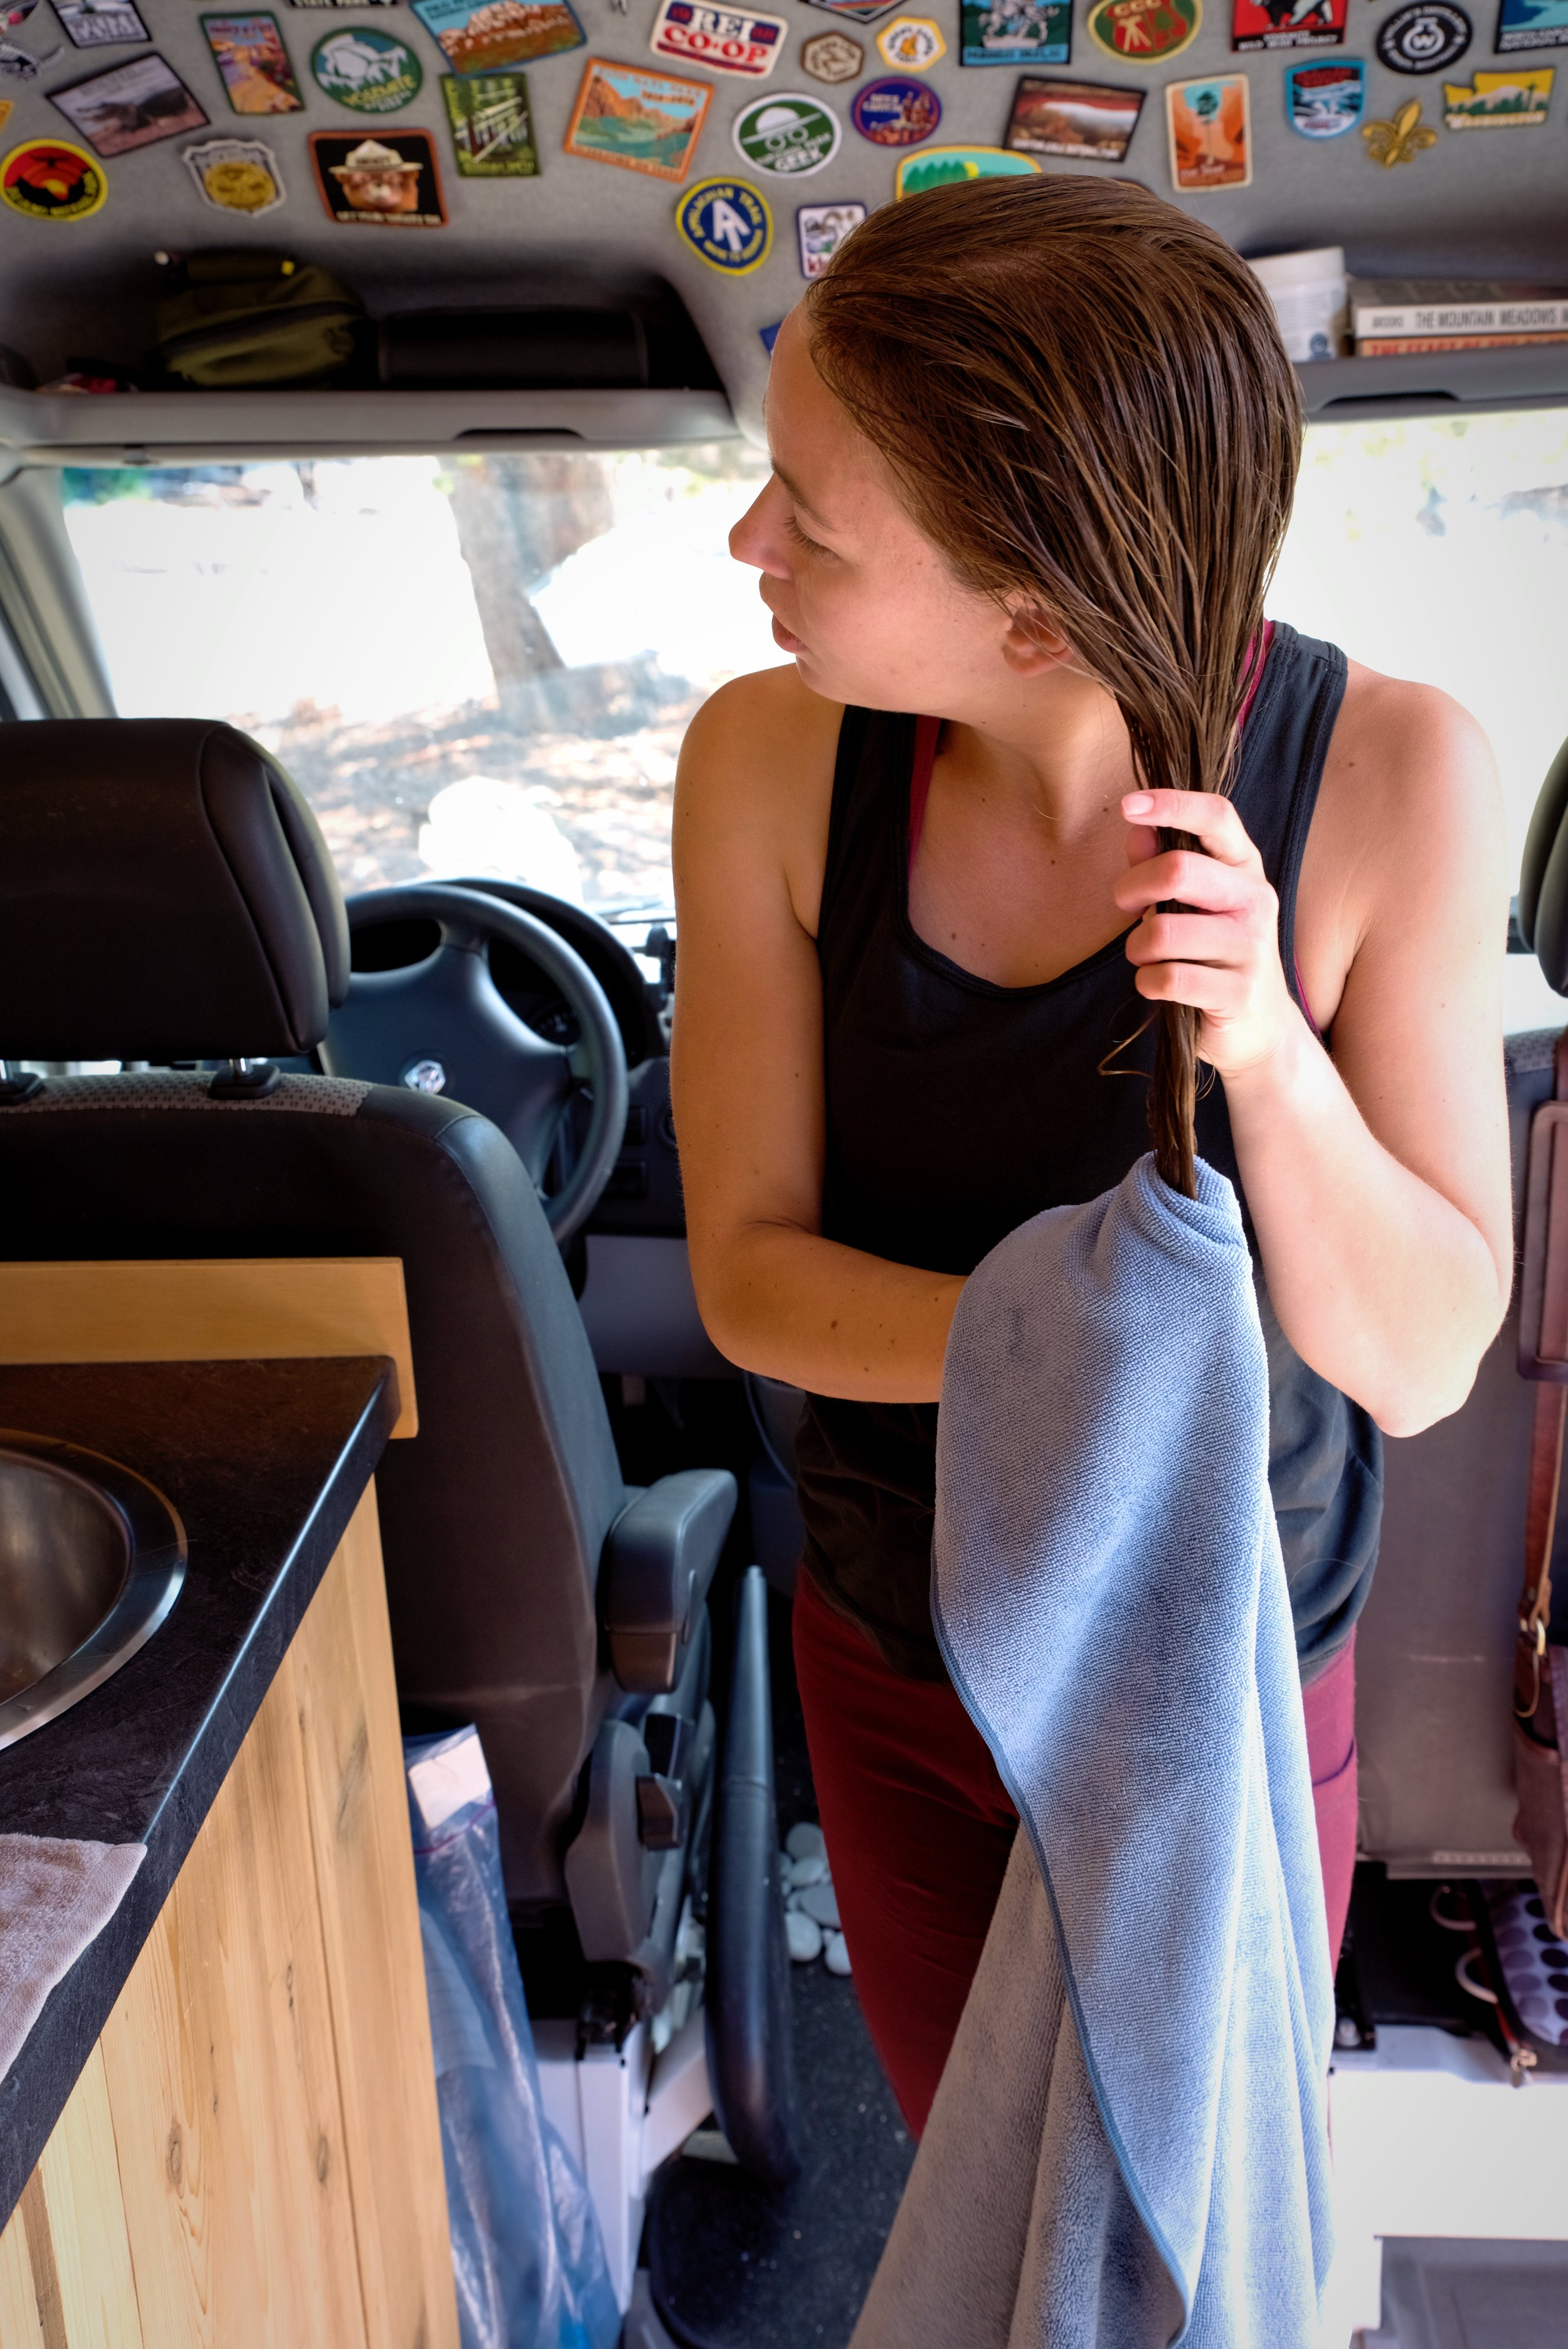 Even if you haven't been able to shower in a while, washing your hair while living in a van can make you feel really refreshed.